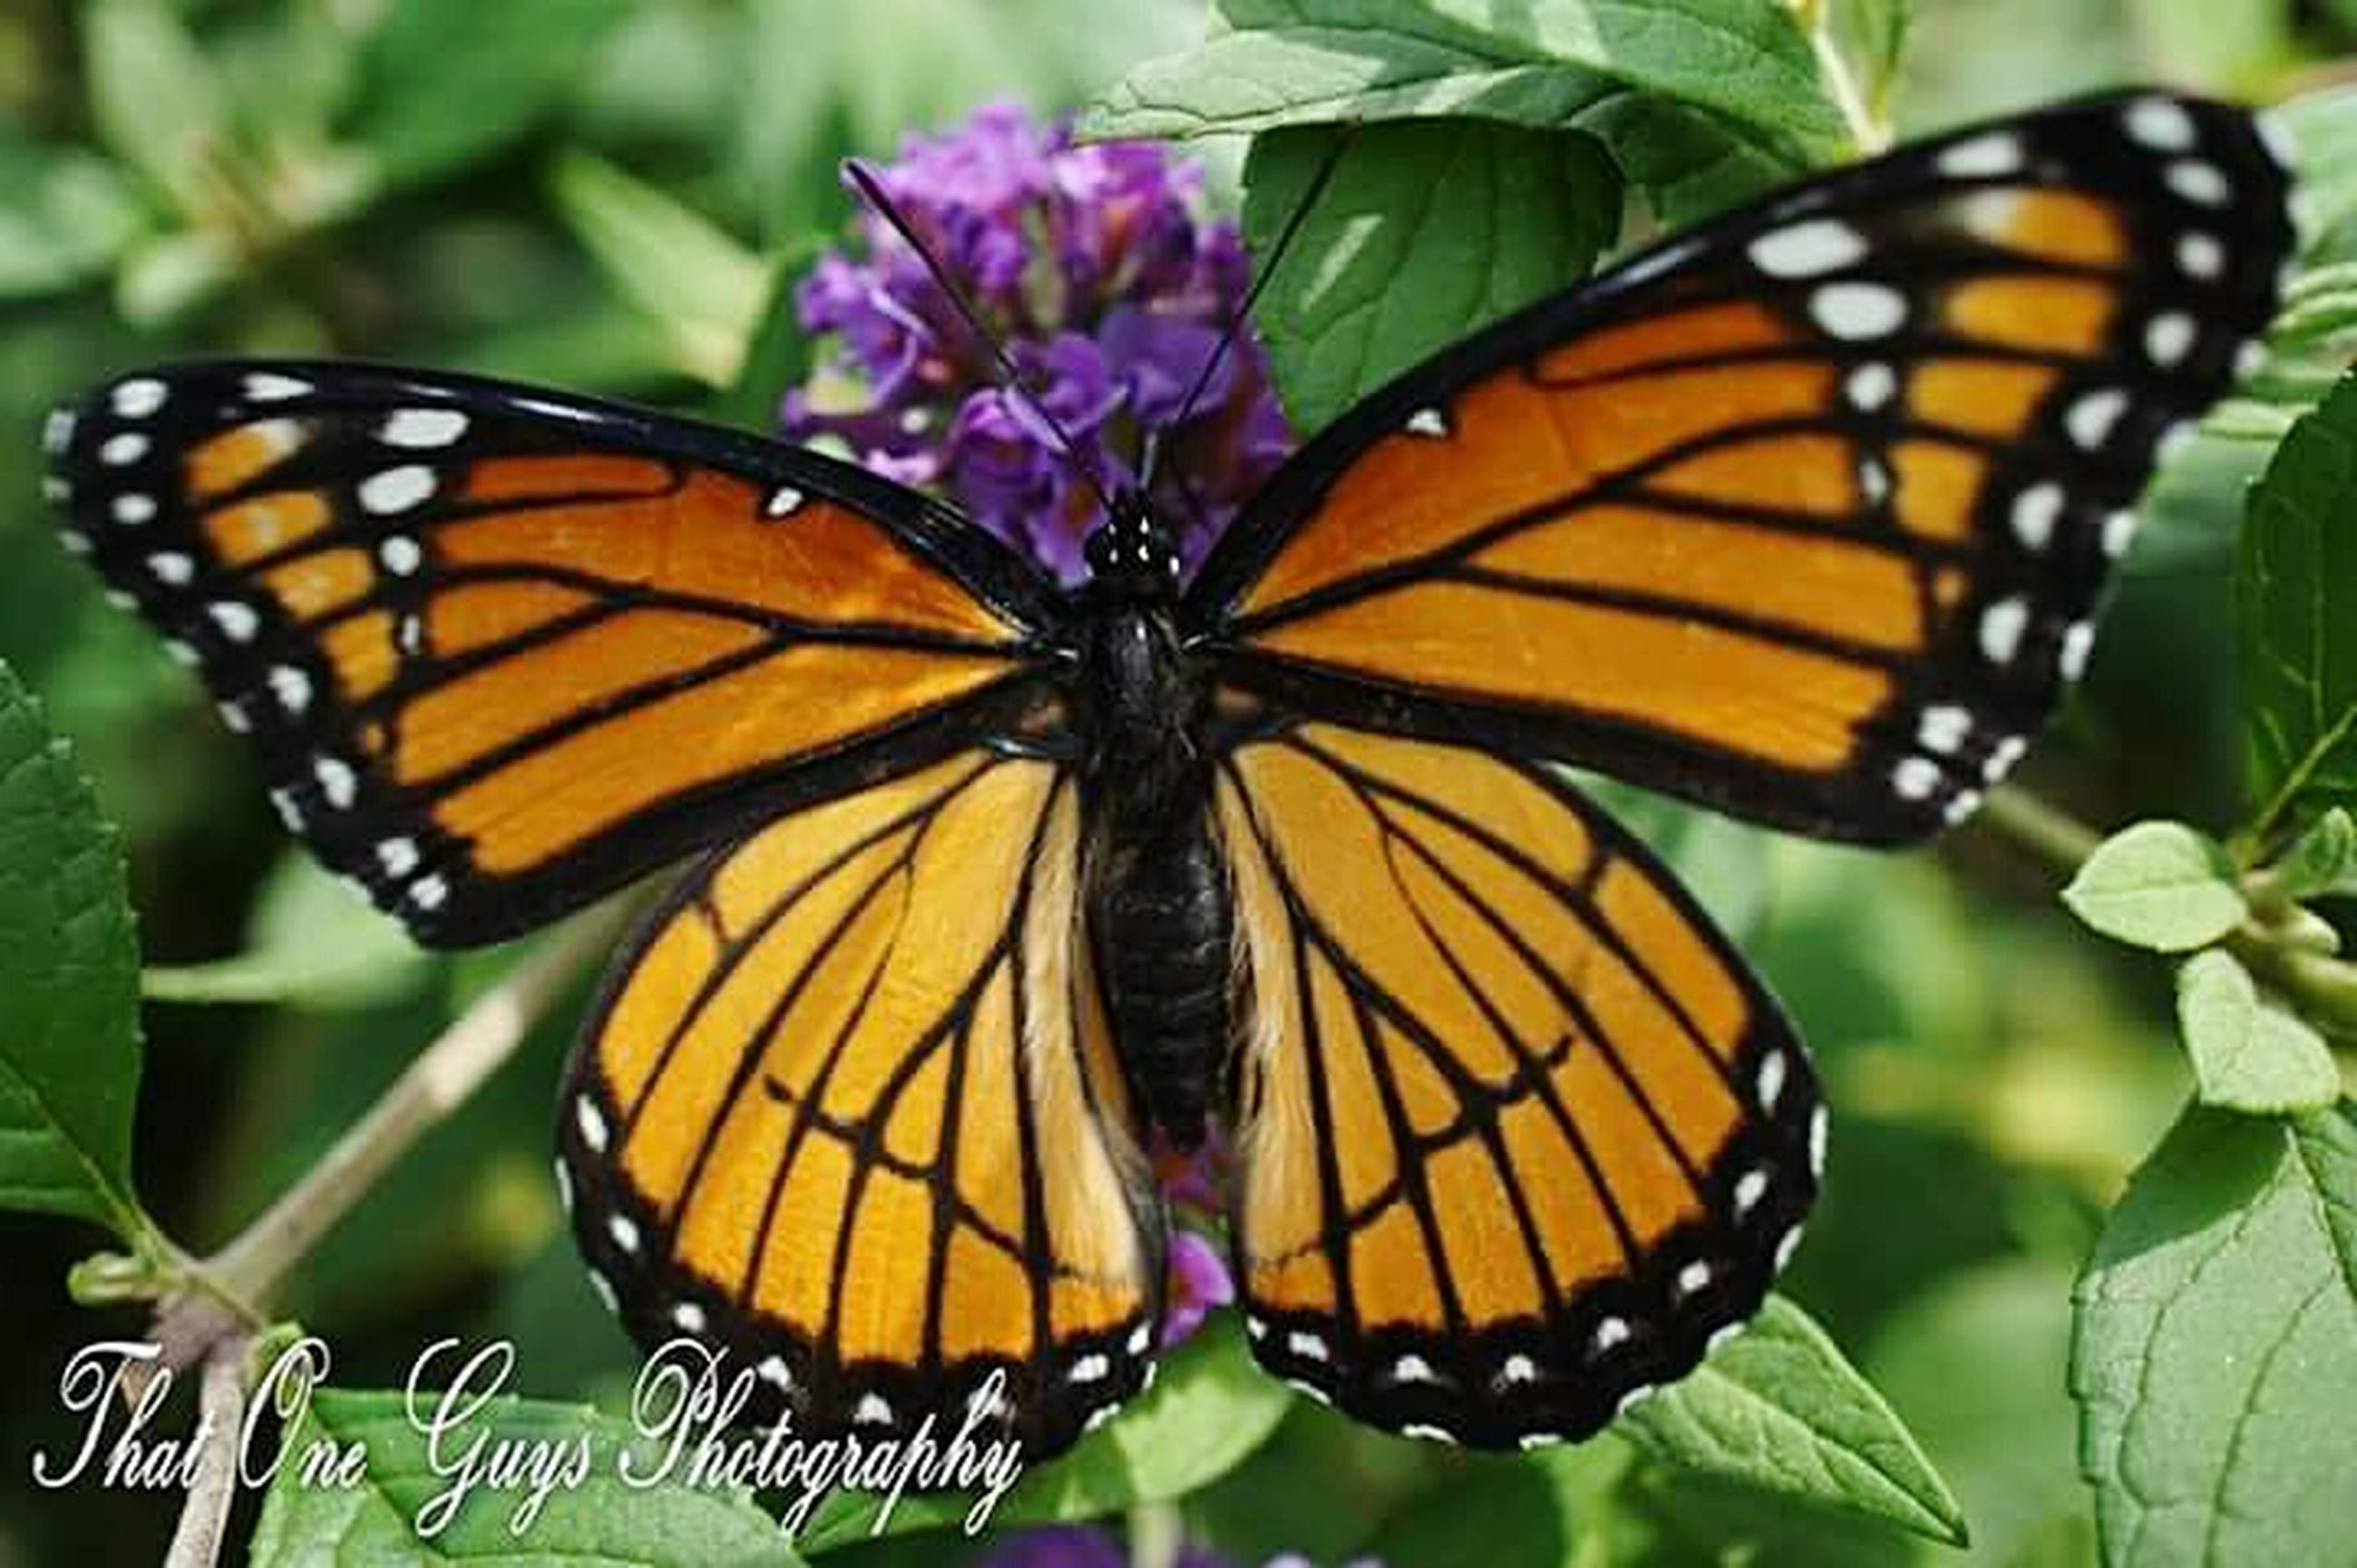 butterfly - insect, insect, animals in the wild, butterfly, one animal, animal themes, wildlife, animal markings, close-up, natural pattern, beauty in nature, focus on foreground, animal wing, flower, nature, plant, leaf, growth, fragility, pollination